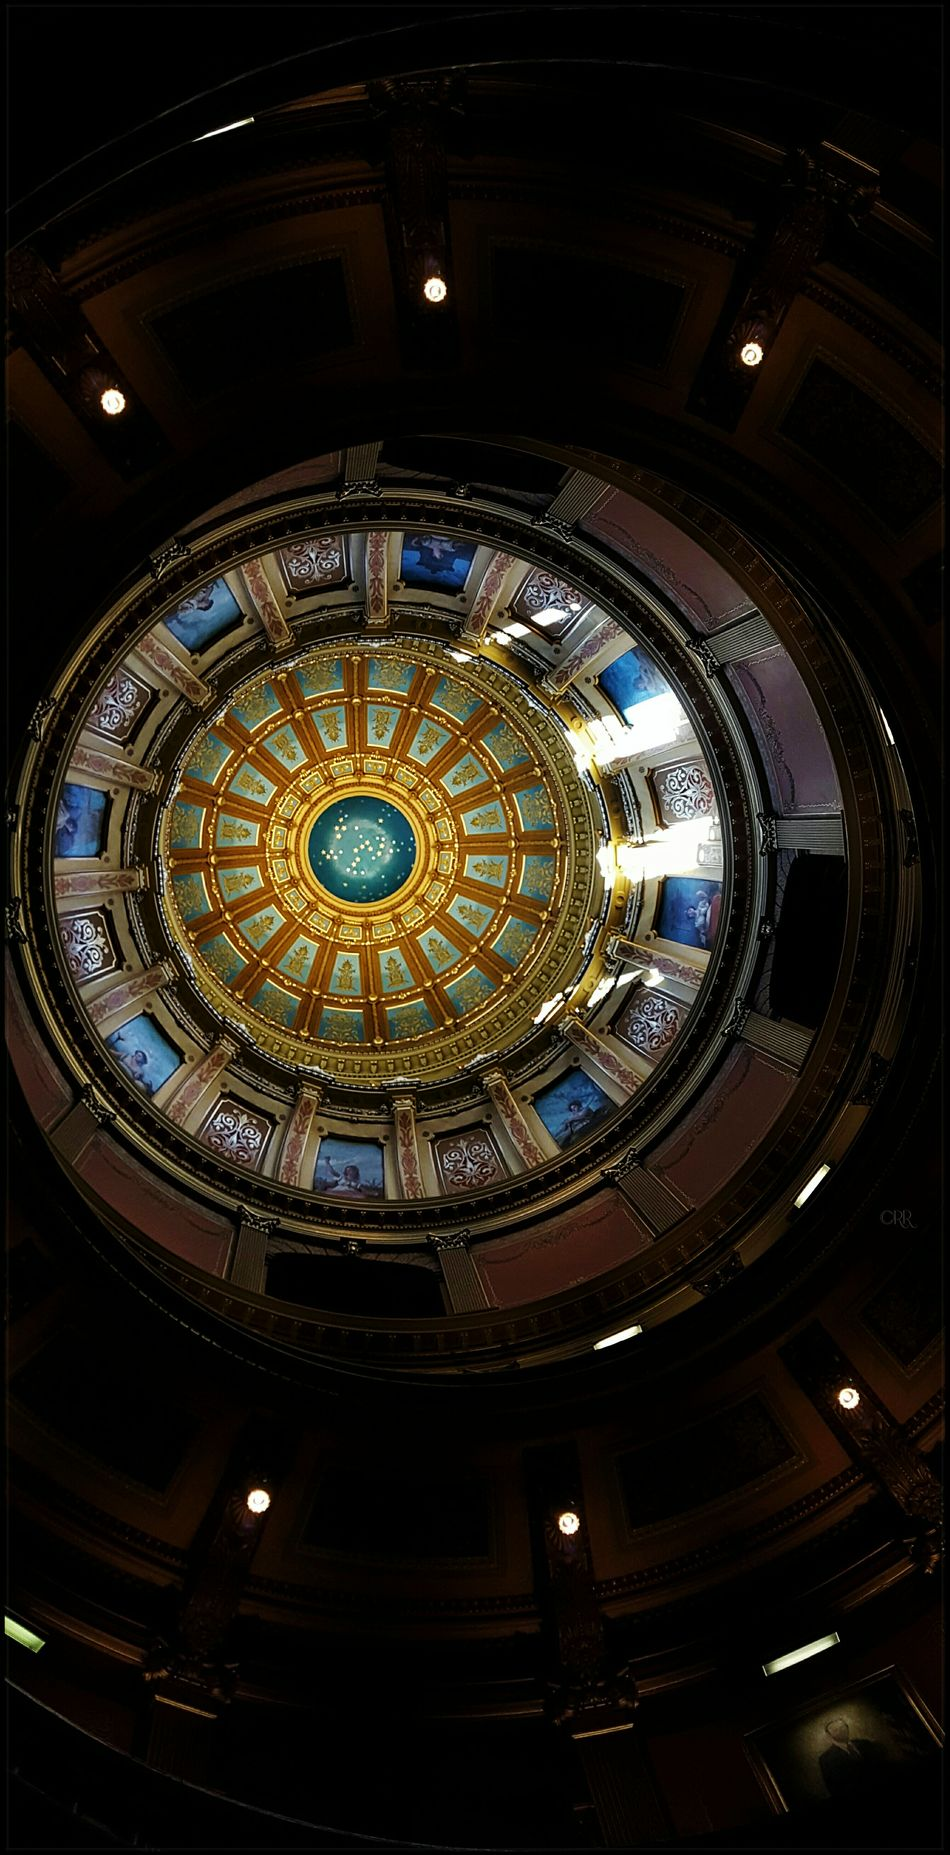 Down the rabbits hole we go... Look Up Dome Celing at the State Capitol Michigan This is what I did for my bday yesterday, never in my 36 years have I Protested or felt so strongly that our Democracy is under attack. Brave New World coming Paying Attention The Resistance I am feeling pretty devastated today and have been for the past month or so... but yesterday our Emergency Stop failed us all. Dictator On The Rise Pray For The World Pray For America this affects us all. Be Kind, But Take No Shit I Will Fight For Our Rights Time To Get Involved ✌💙